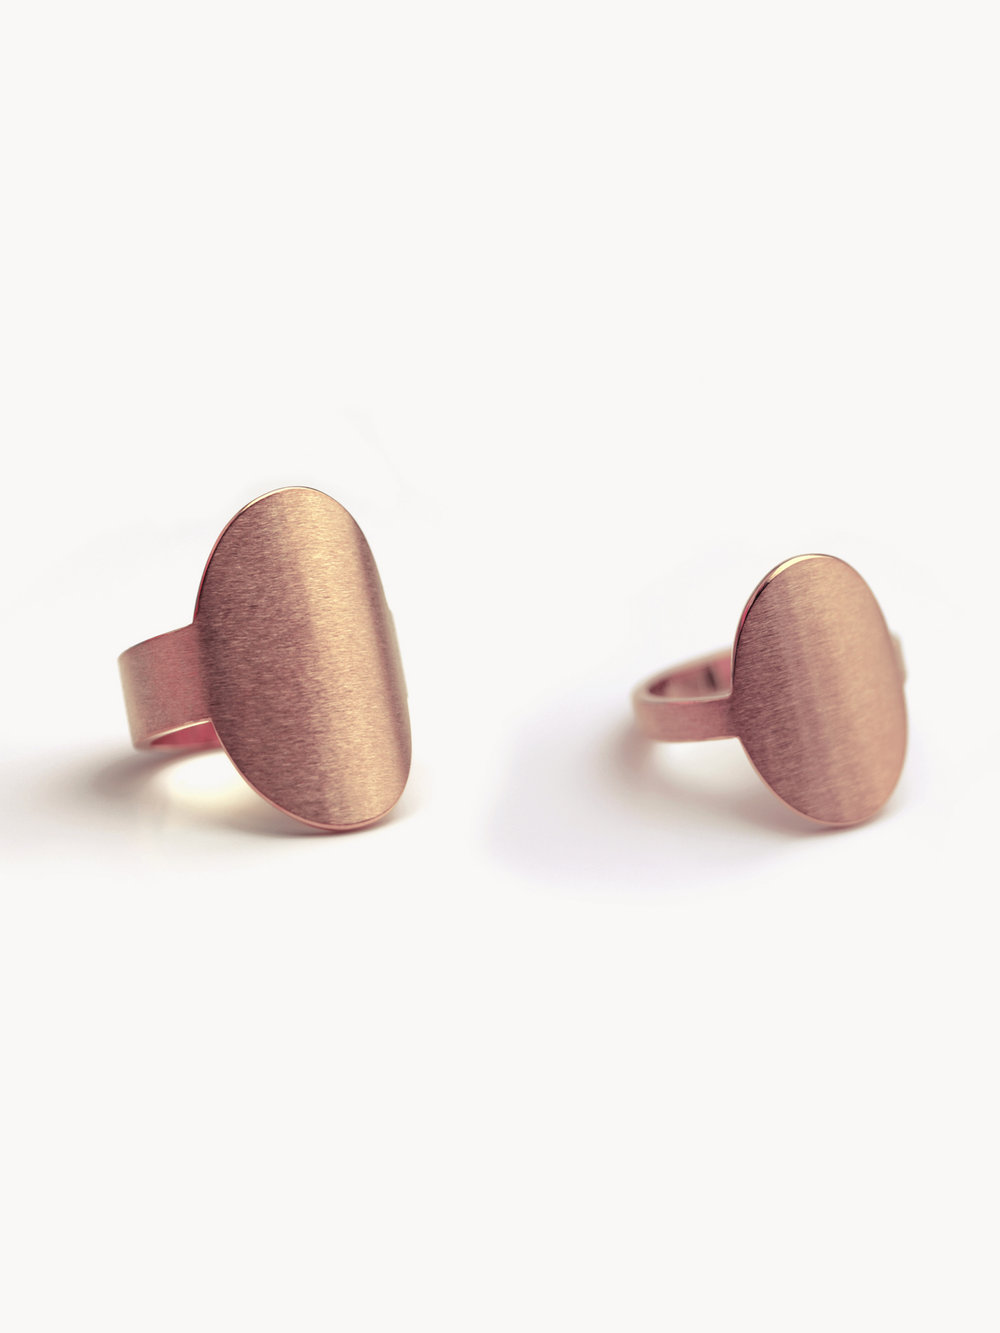 Übersicht Siegelringe Anda, hochoval in 585 Rosegold  Overview signet rings Anda, vertical oval in 14kt rosegold